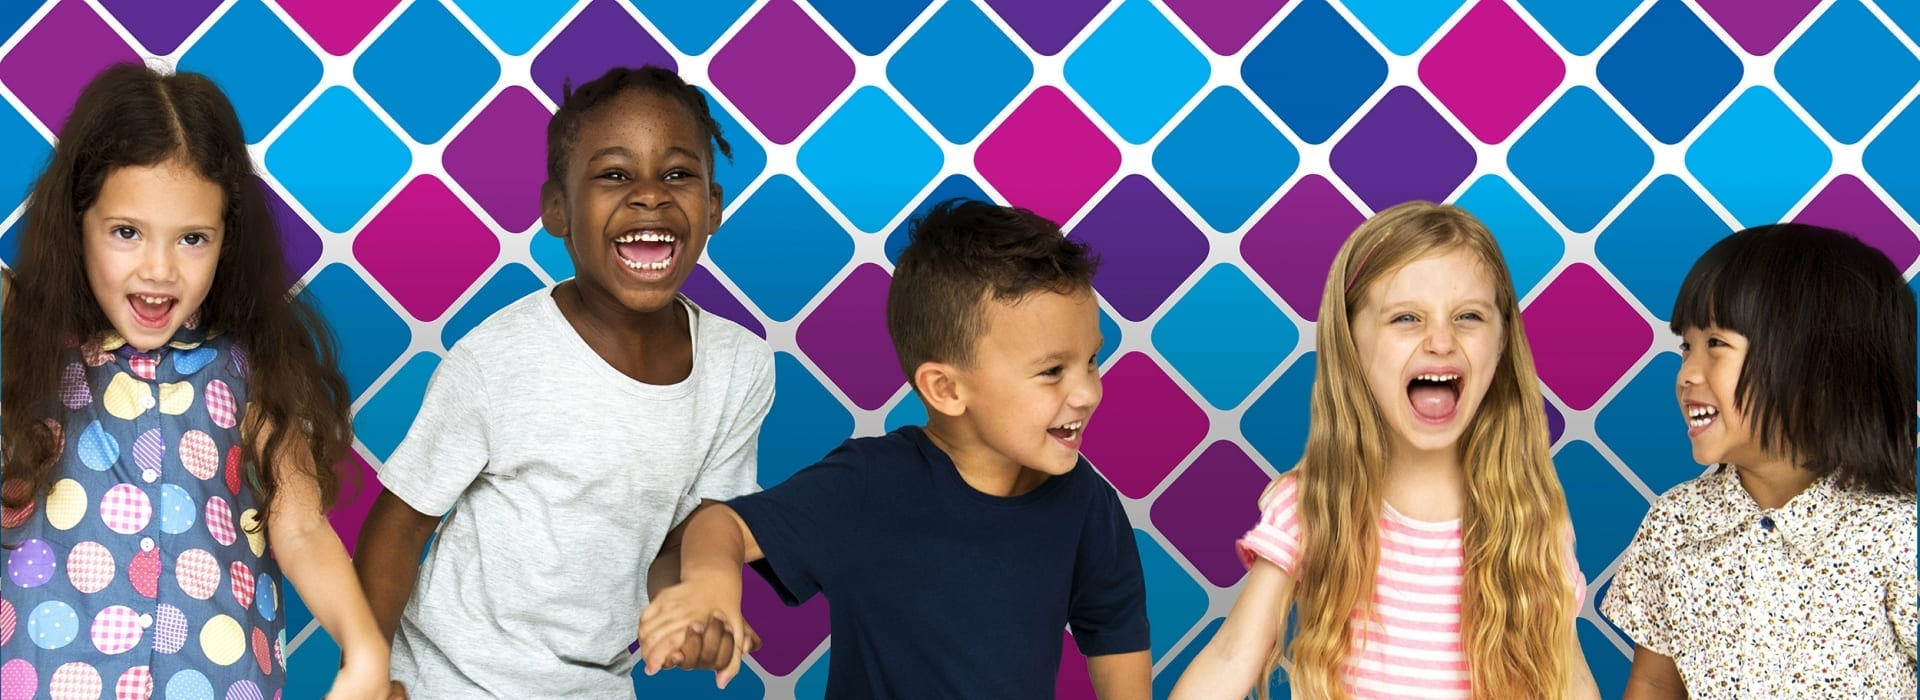 Group of young kids laughing